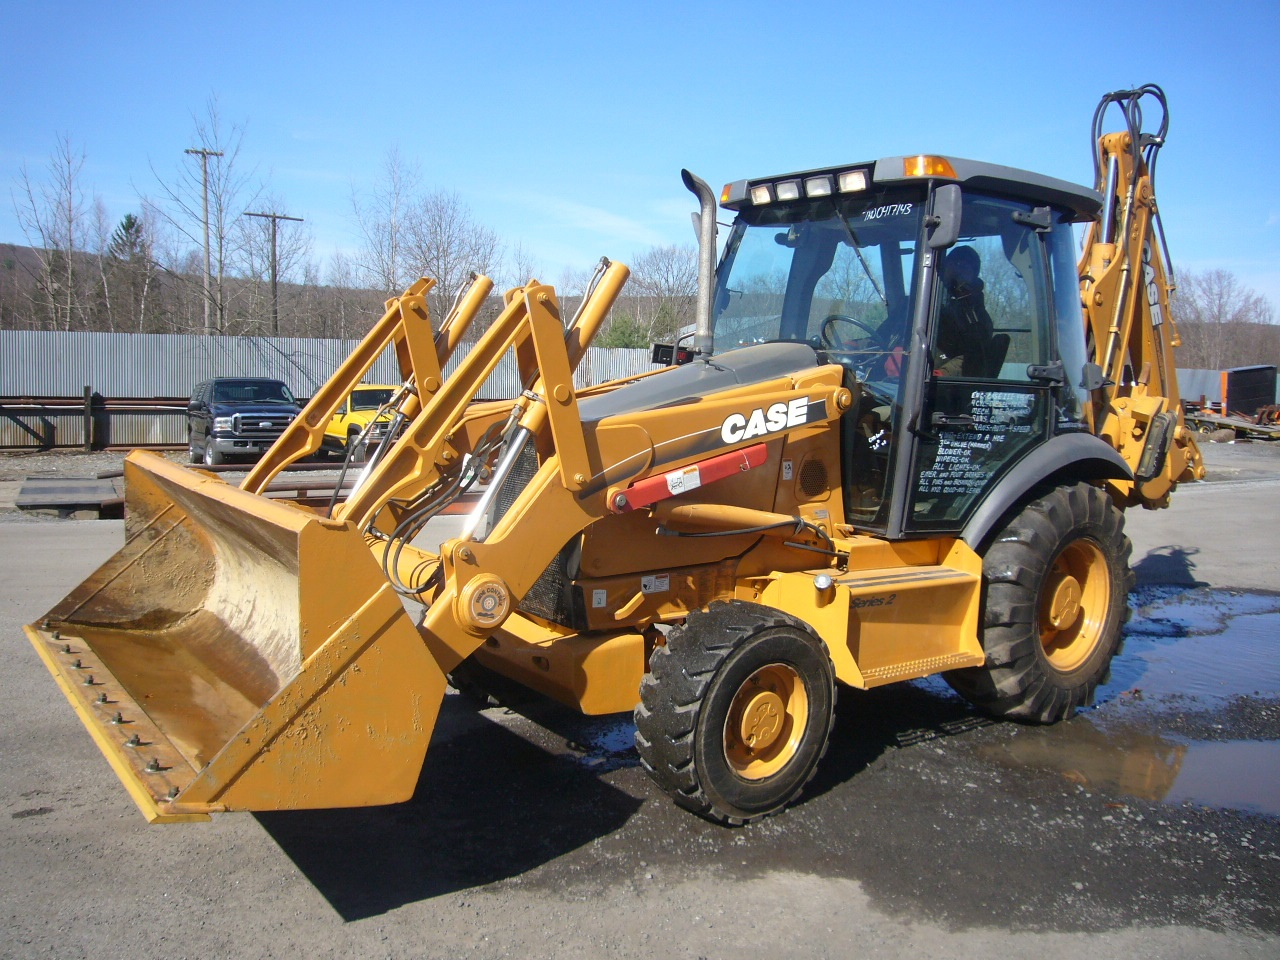 2006 Case 580 Super M Series II Backhoe Loader for sale by